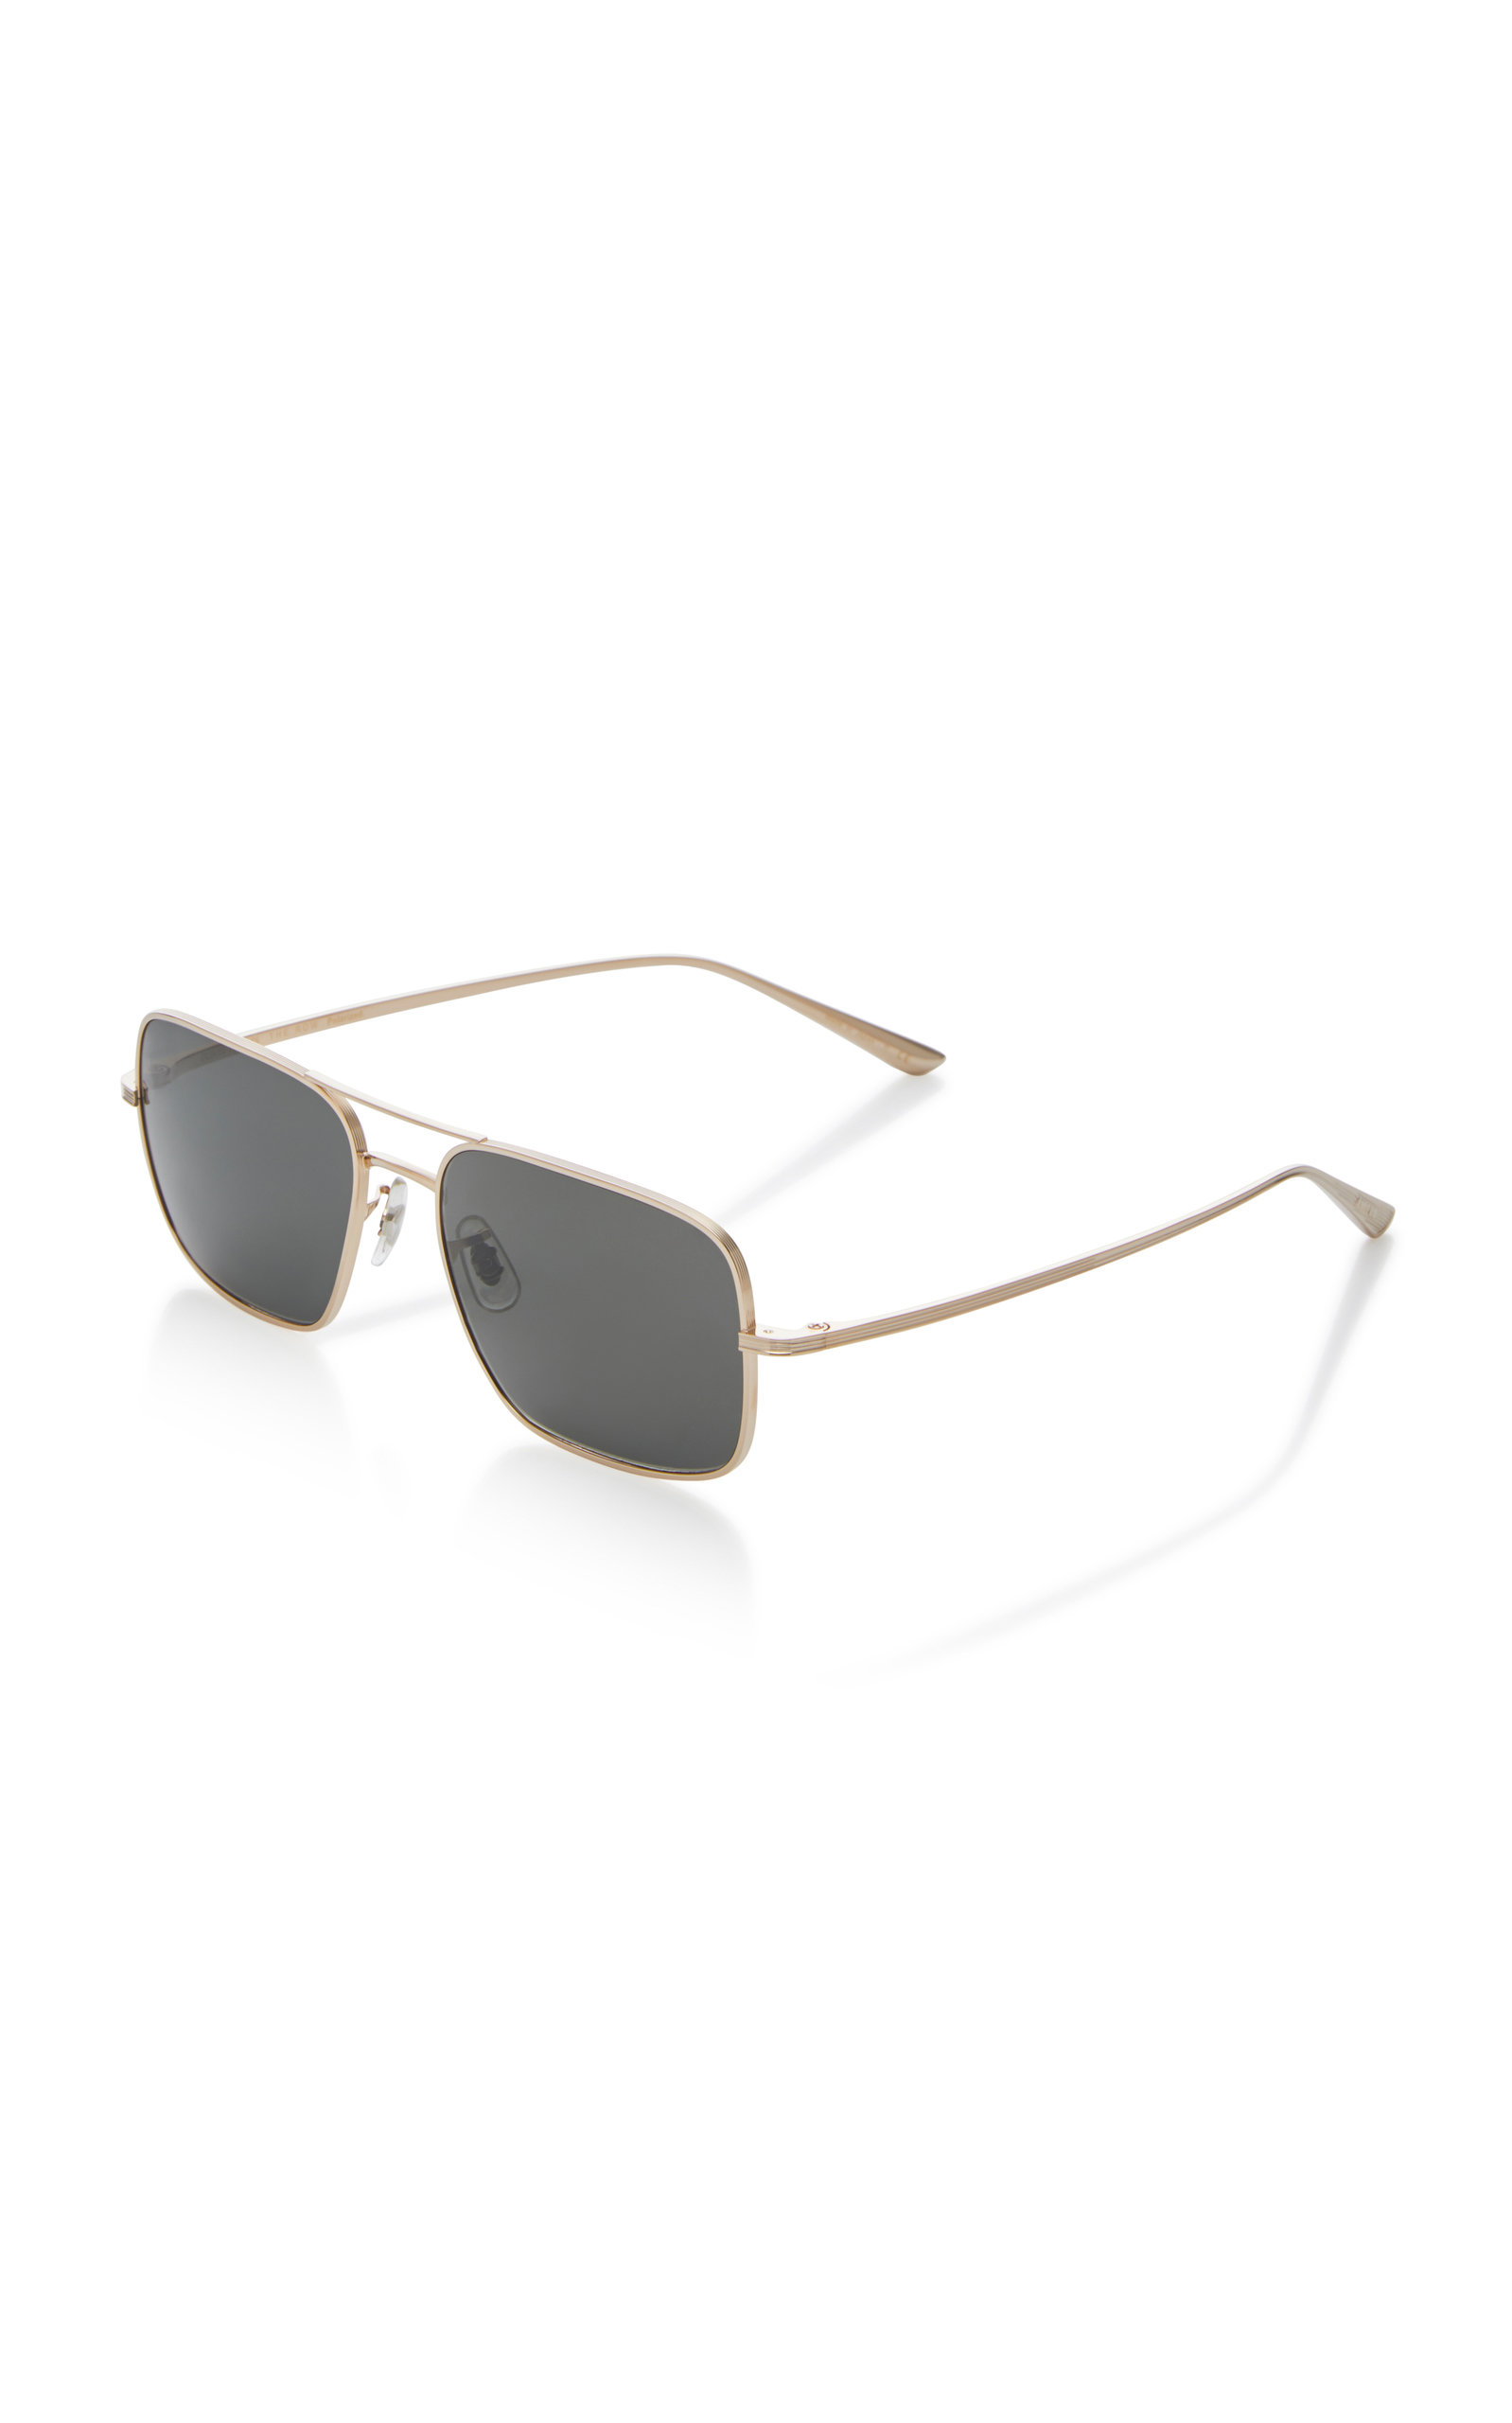 dec01d4bf53 Oliver Peoples THE ROWVictory LA Square Sunglasses. CLOSE. Loading. Loading